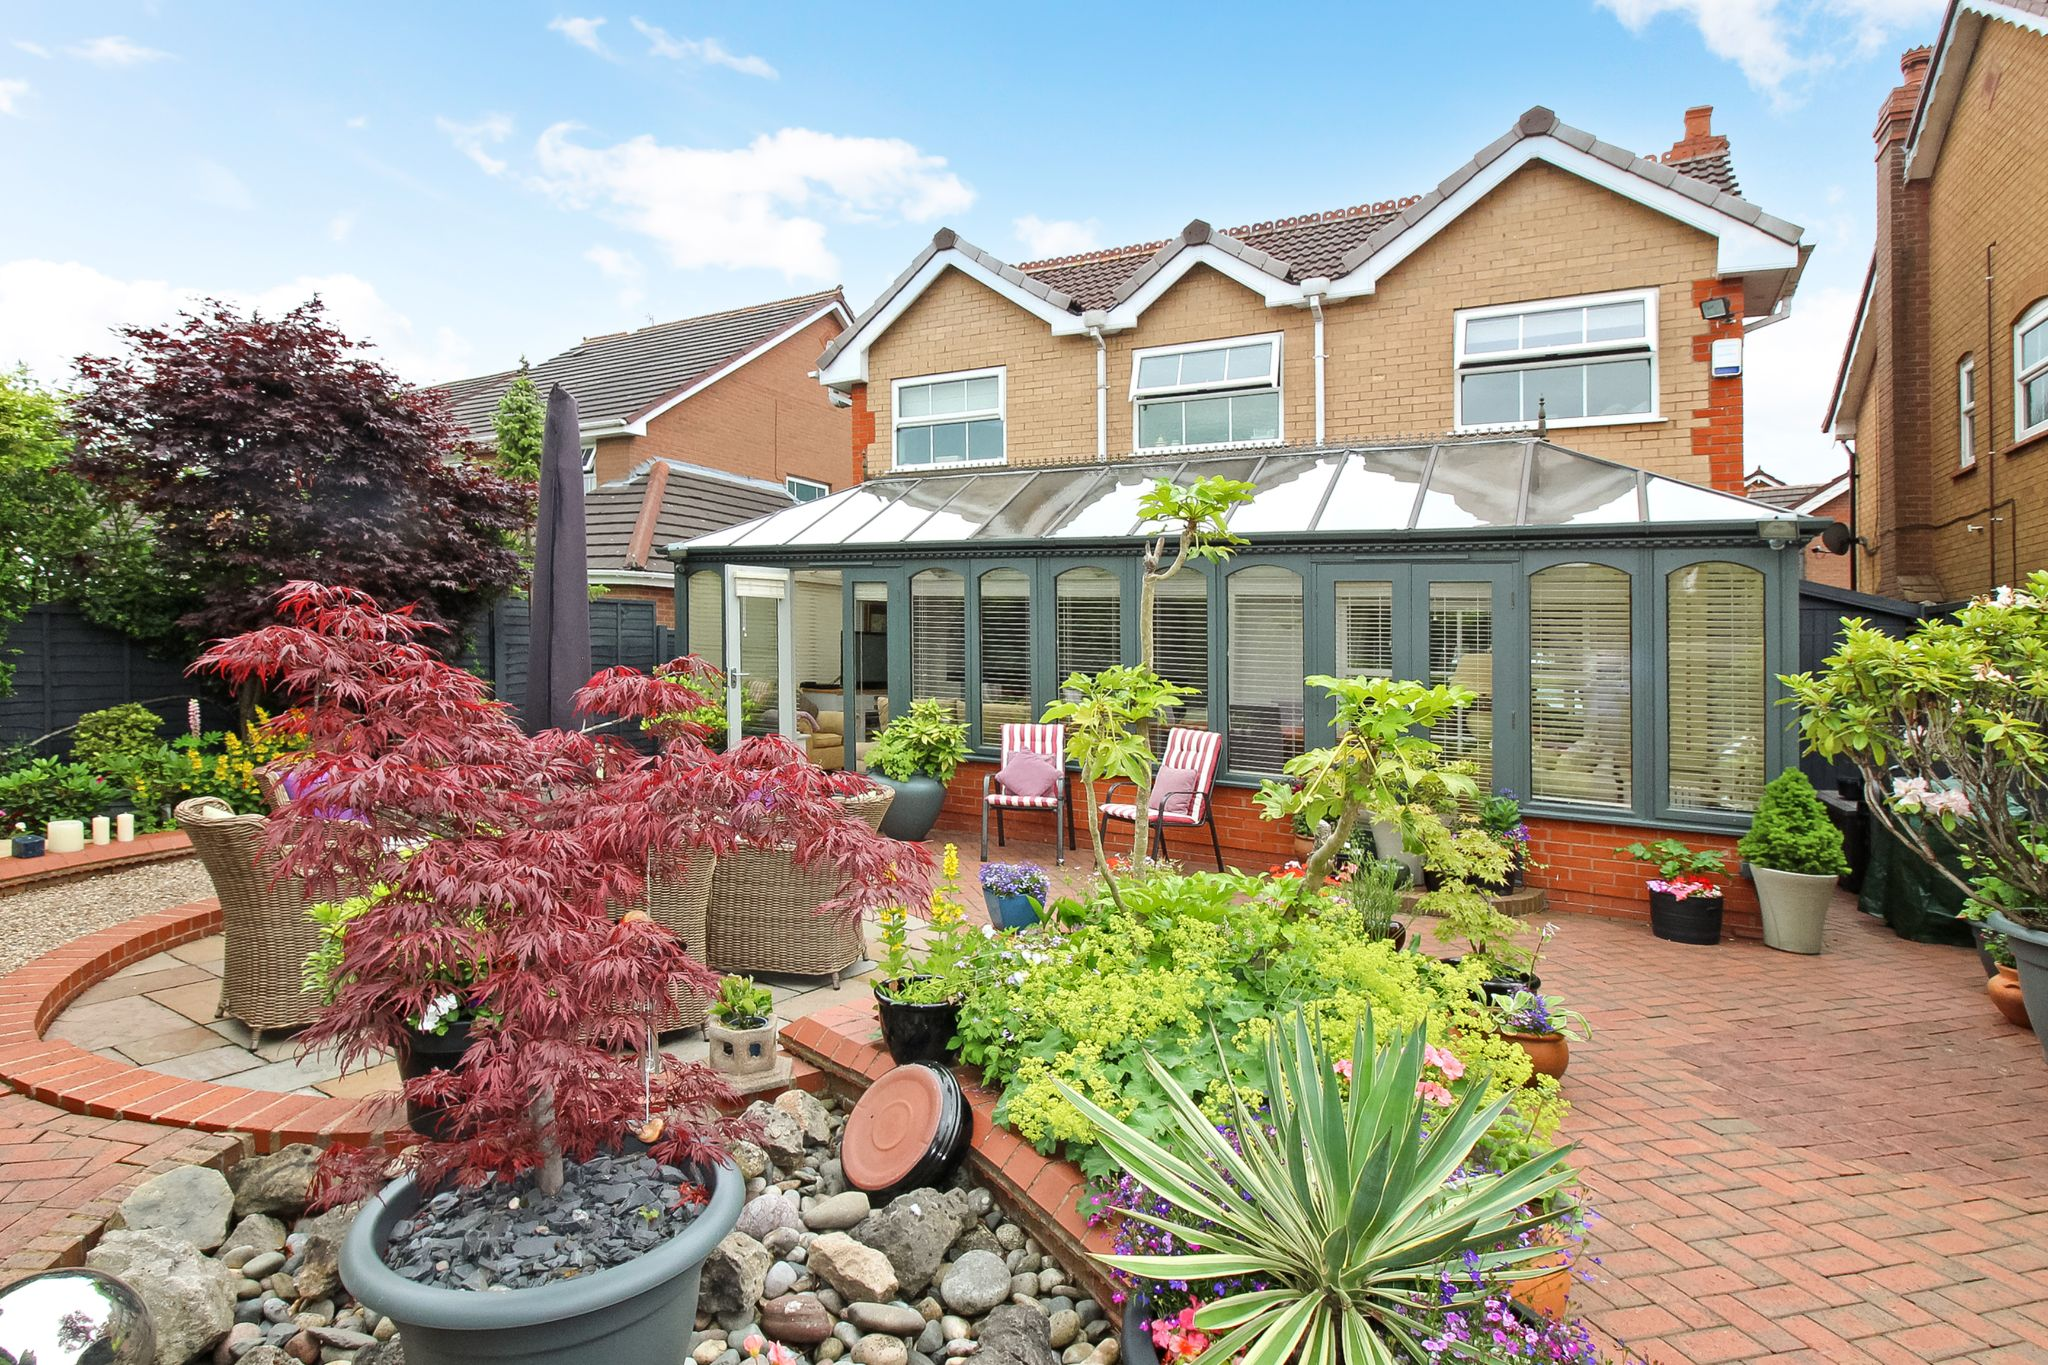 4 bedroom detached house For Sale in Solihull - Photograph 14.